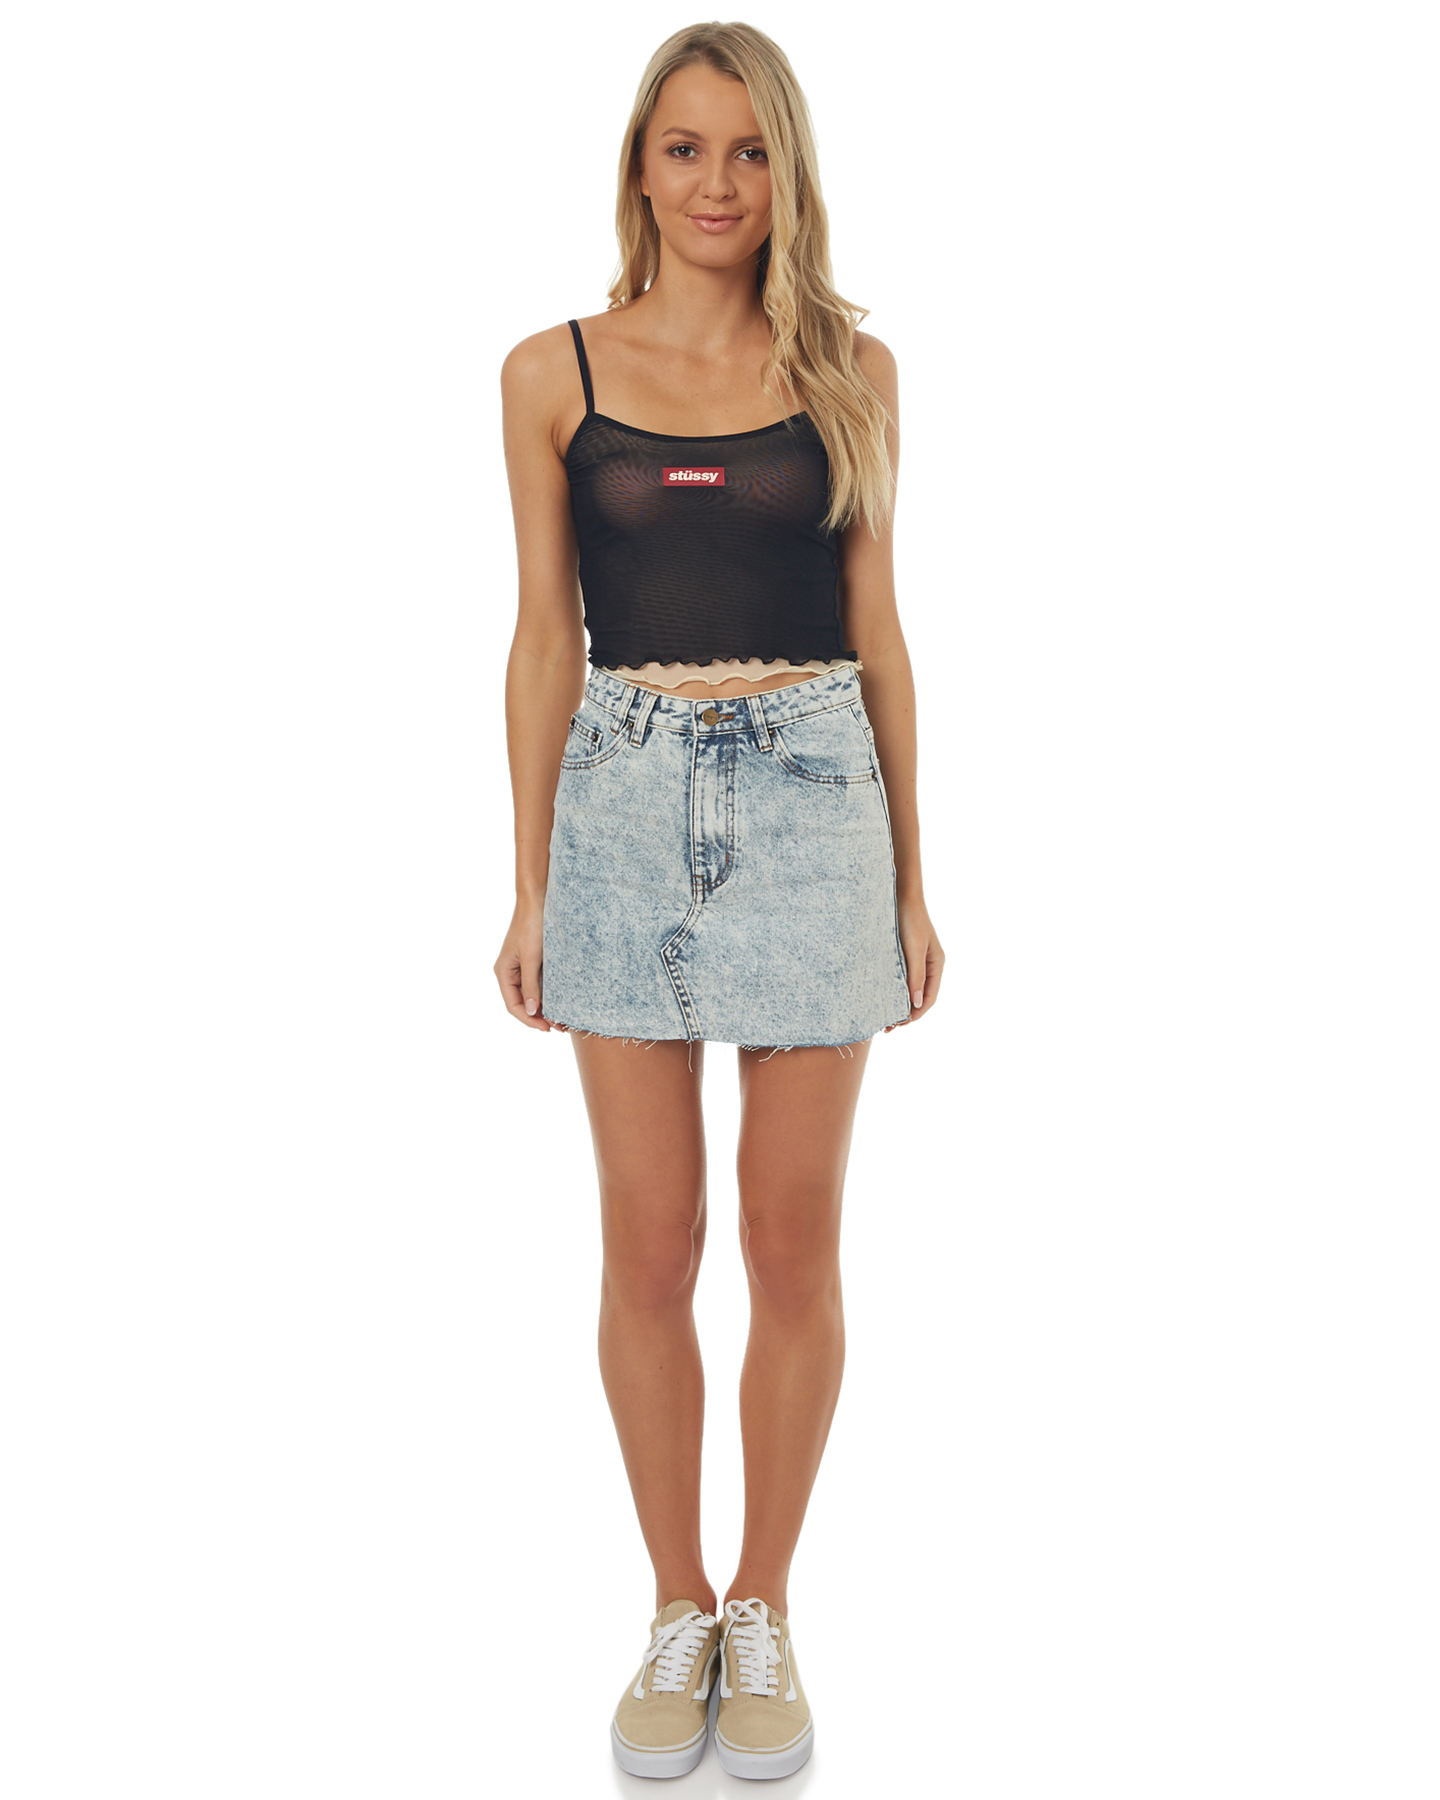 Clothing websites that are trendy affordable to shop for cute and stylish fashion for women. These cheap clothing websites have tons of affordable options and styles for every occasion and season. Appalachian State University.